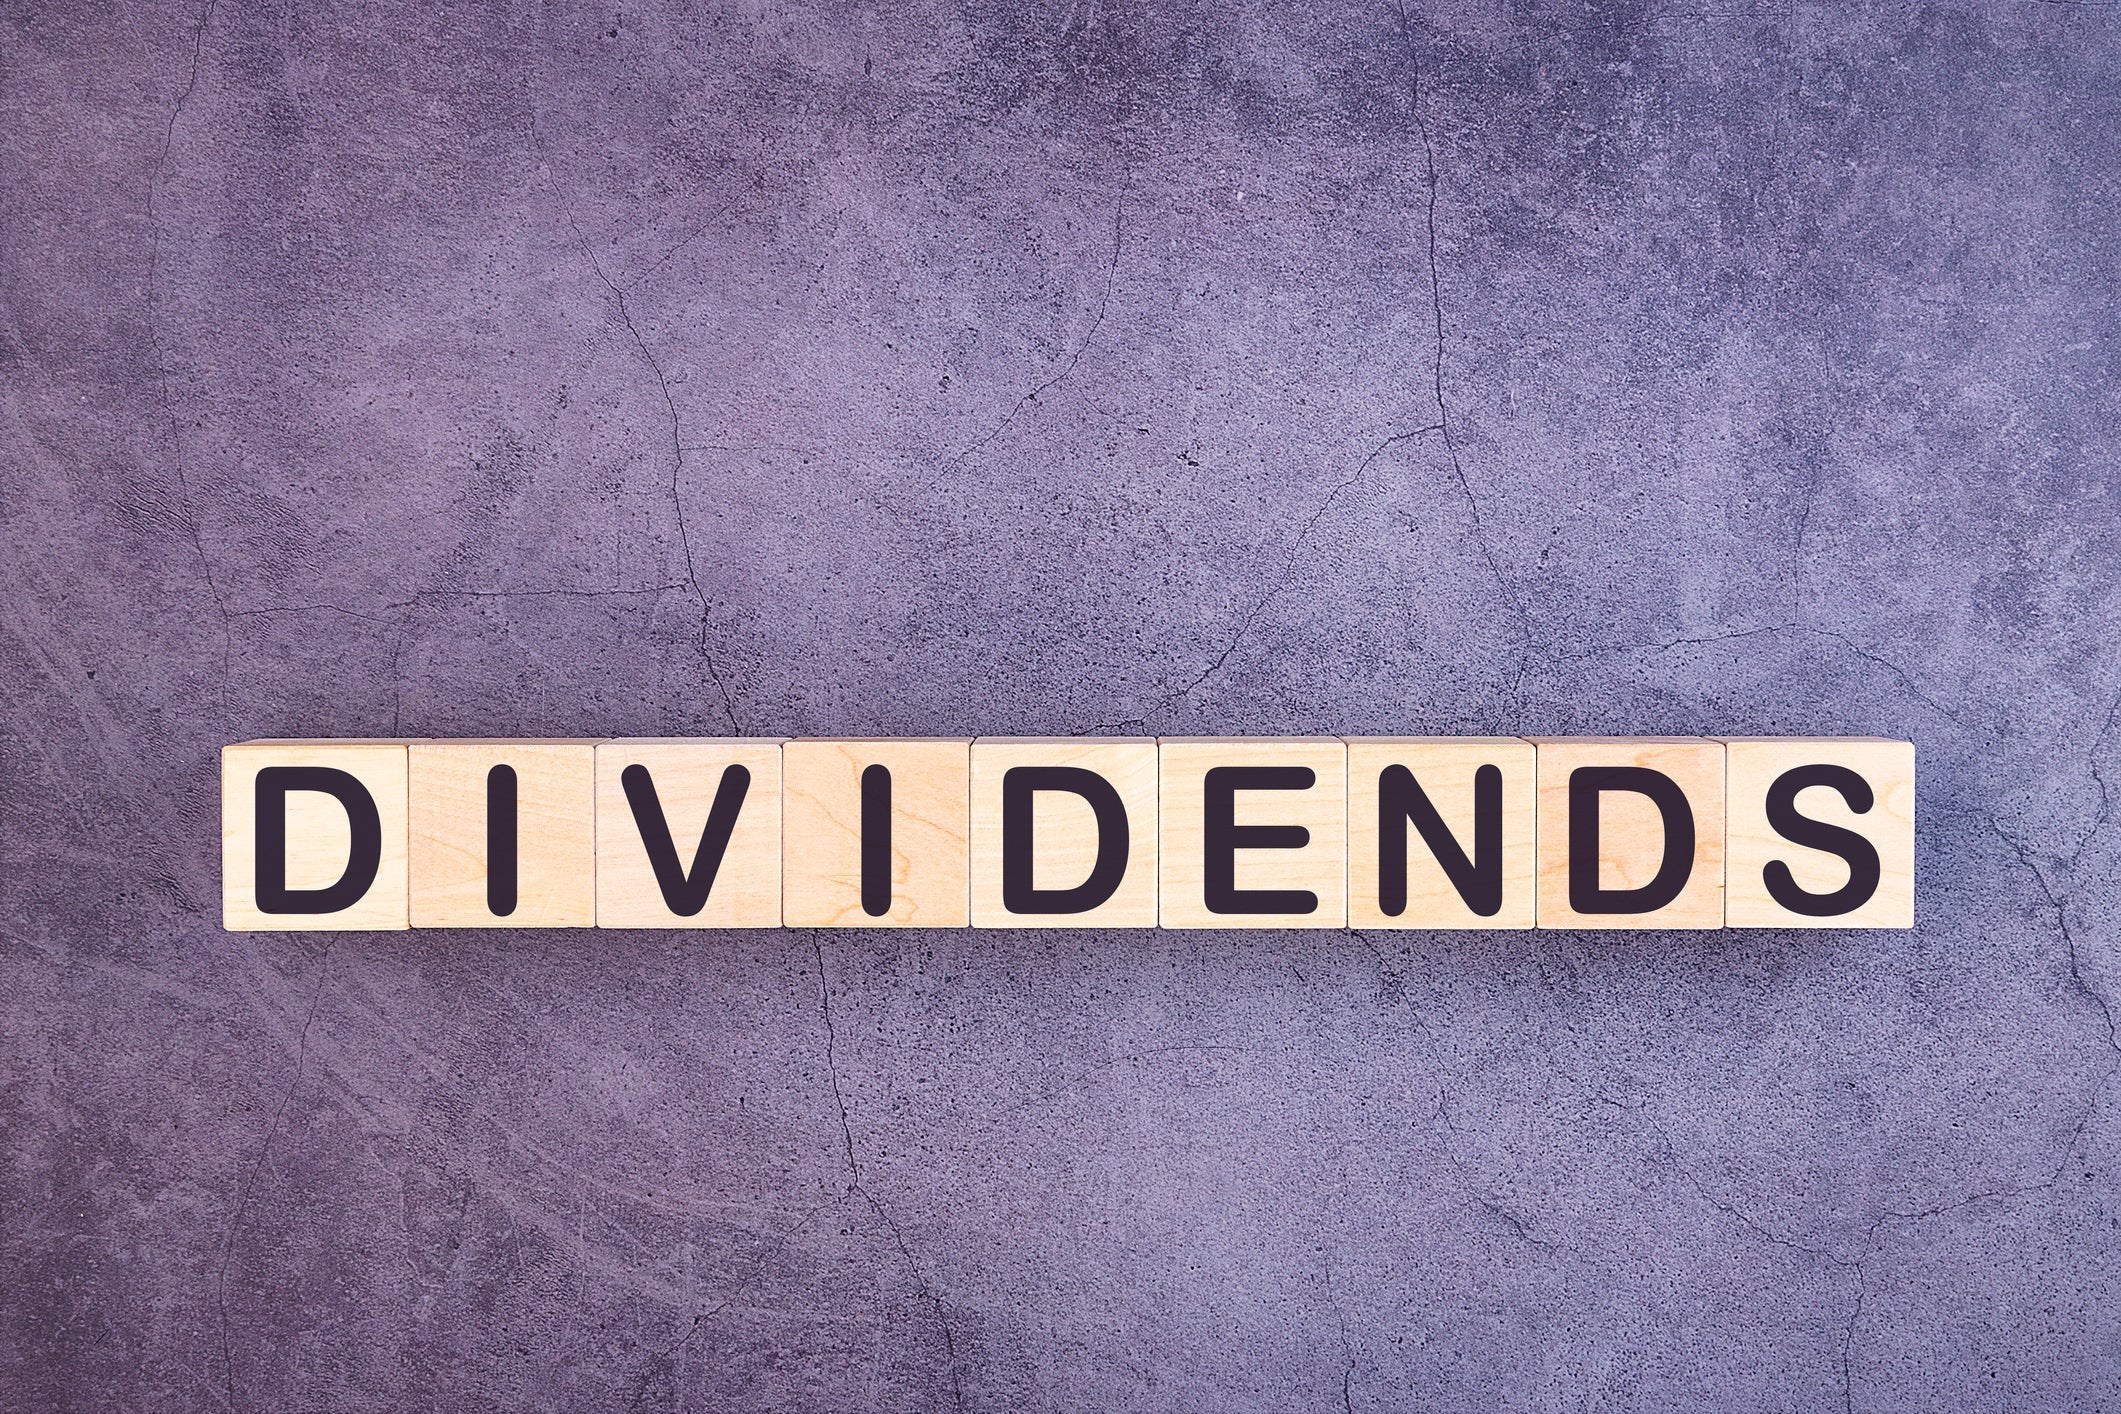 2 No-Brainer Dividend Stocks Yielding More Than 4%